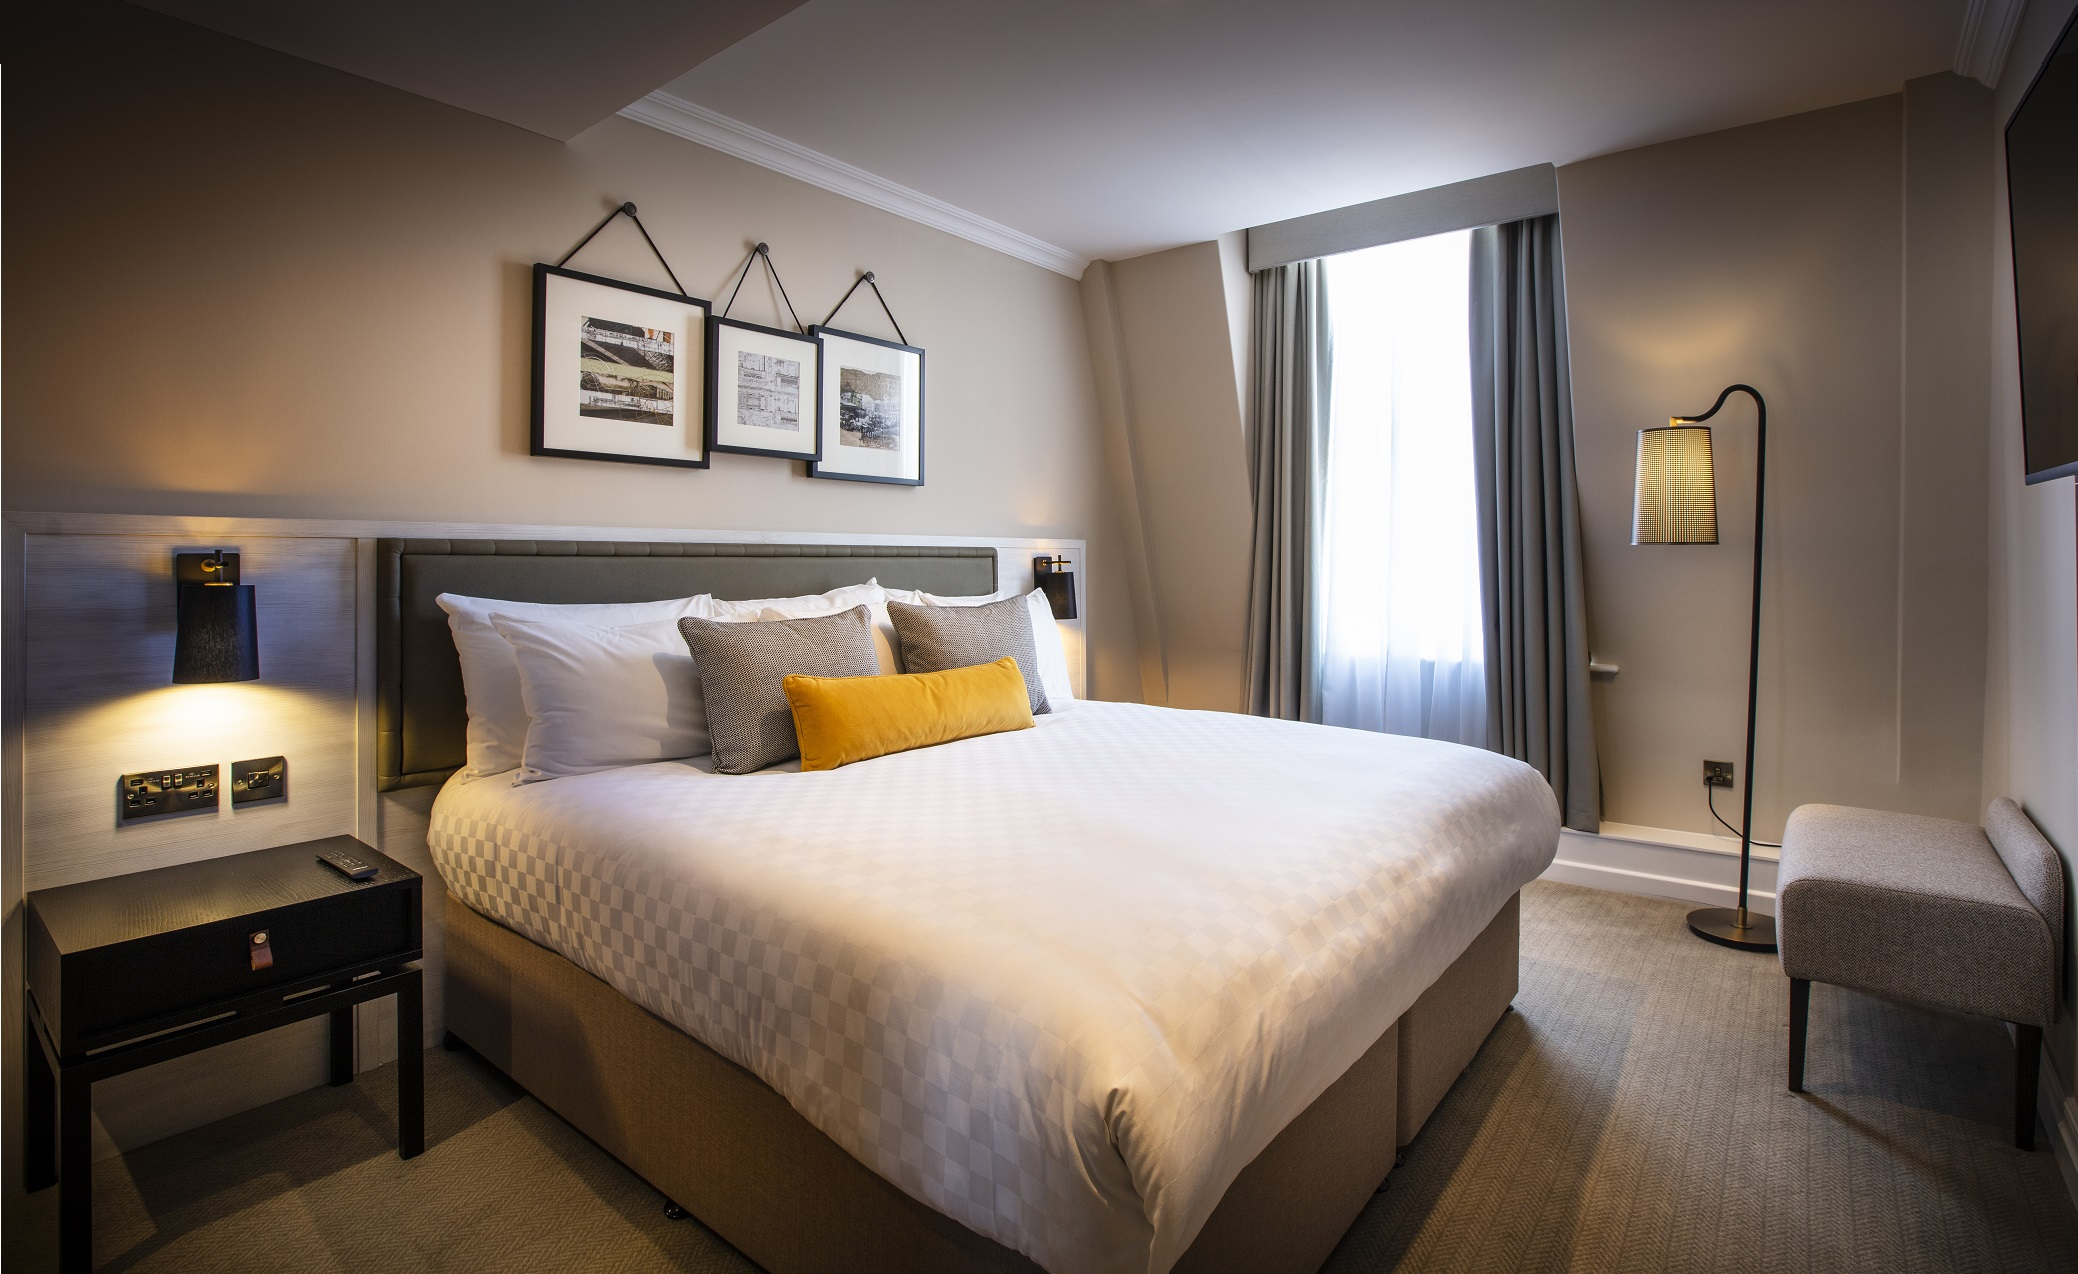 Guestroom at The Grosvenor - double bed, headboard, bedsides and more